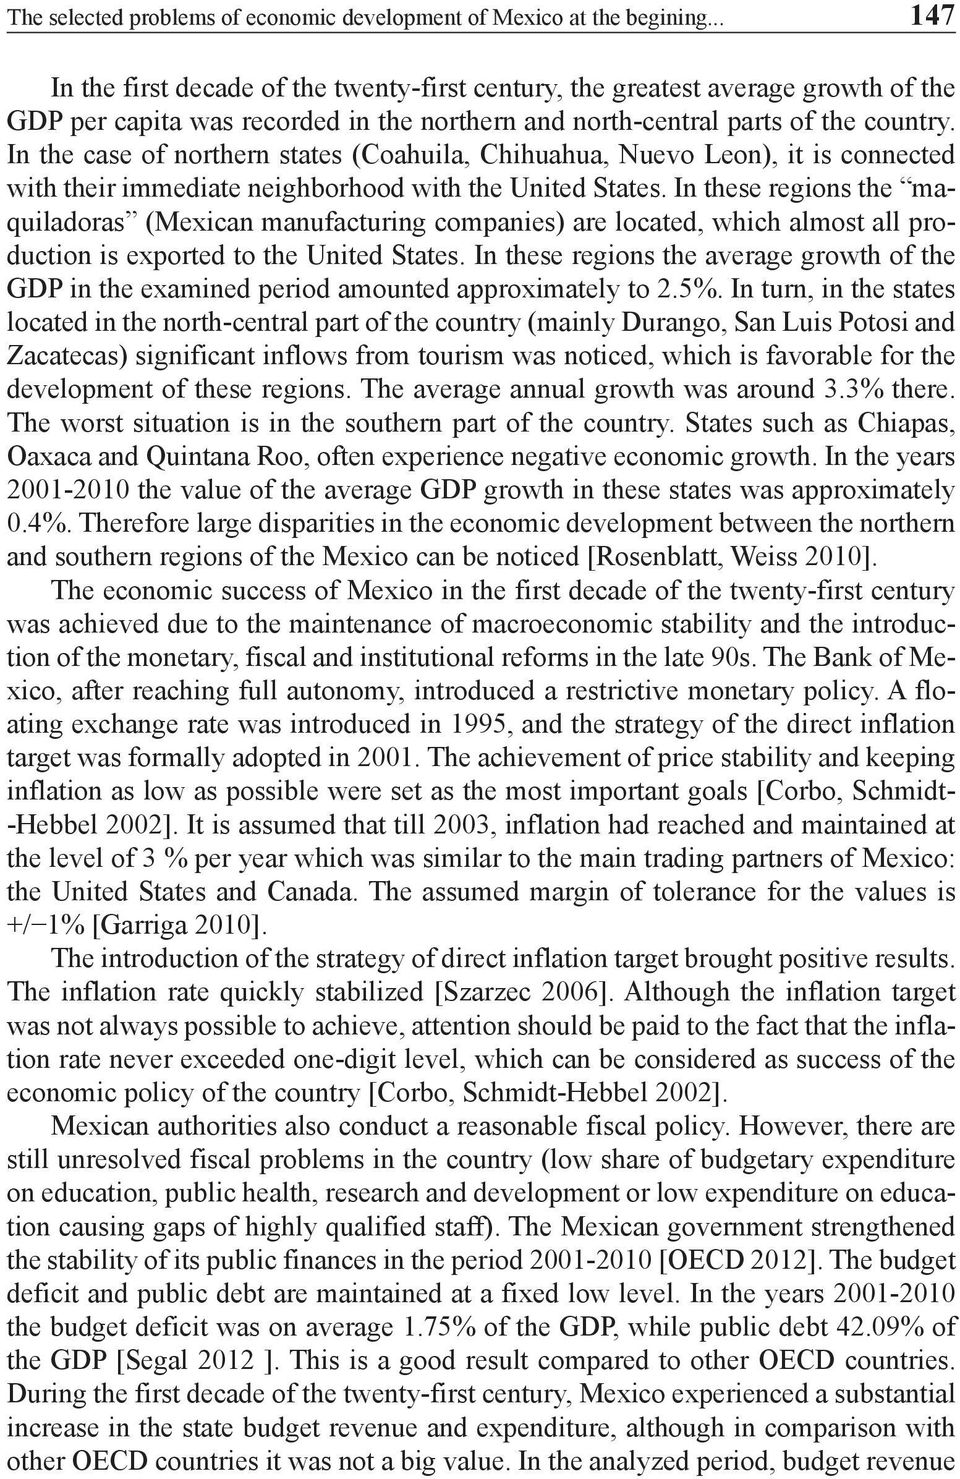 In the case of northern states (Coahuila, Chihuahua, Nuevo Leon), it is connected with their immediate neighborhood with the United States.